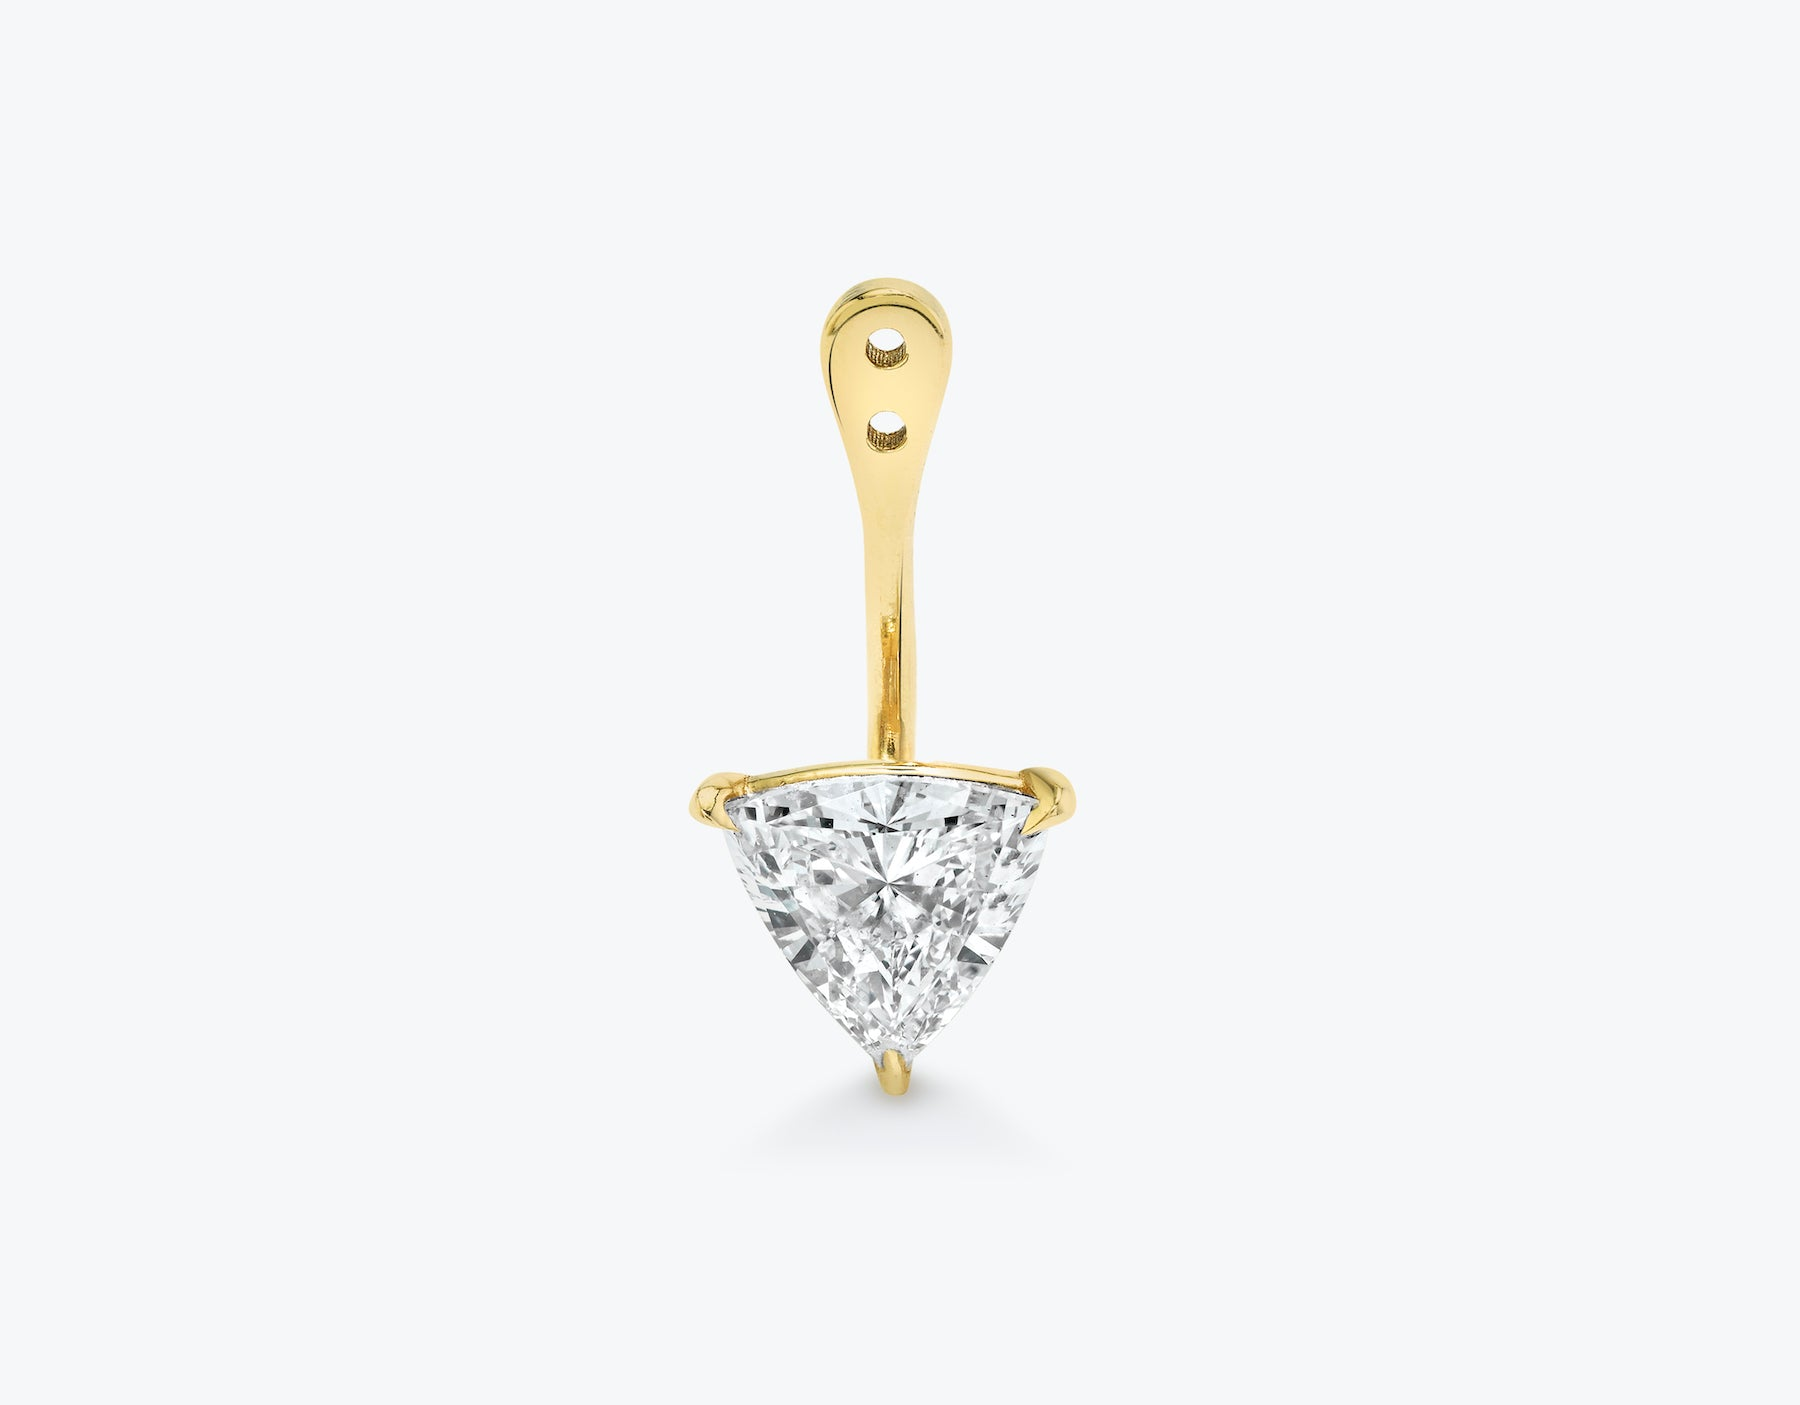 Vrai solitaire trillion diamond drop ear jackets made in 14k solid gold with sustainably created diamonds, 14K Yellow Gold